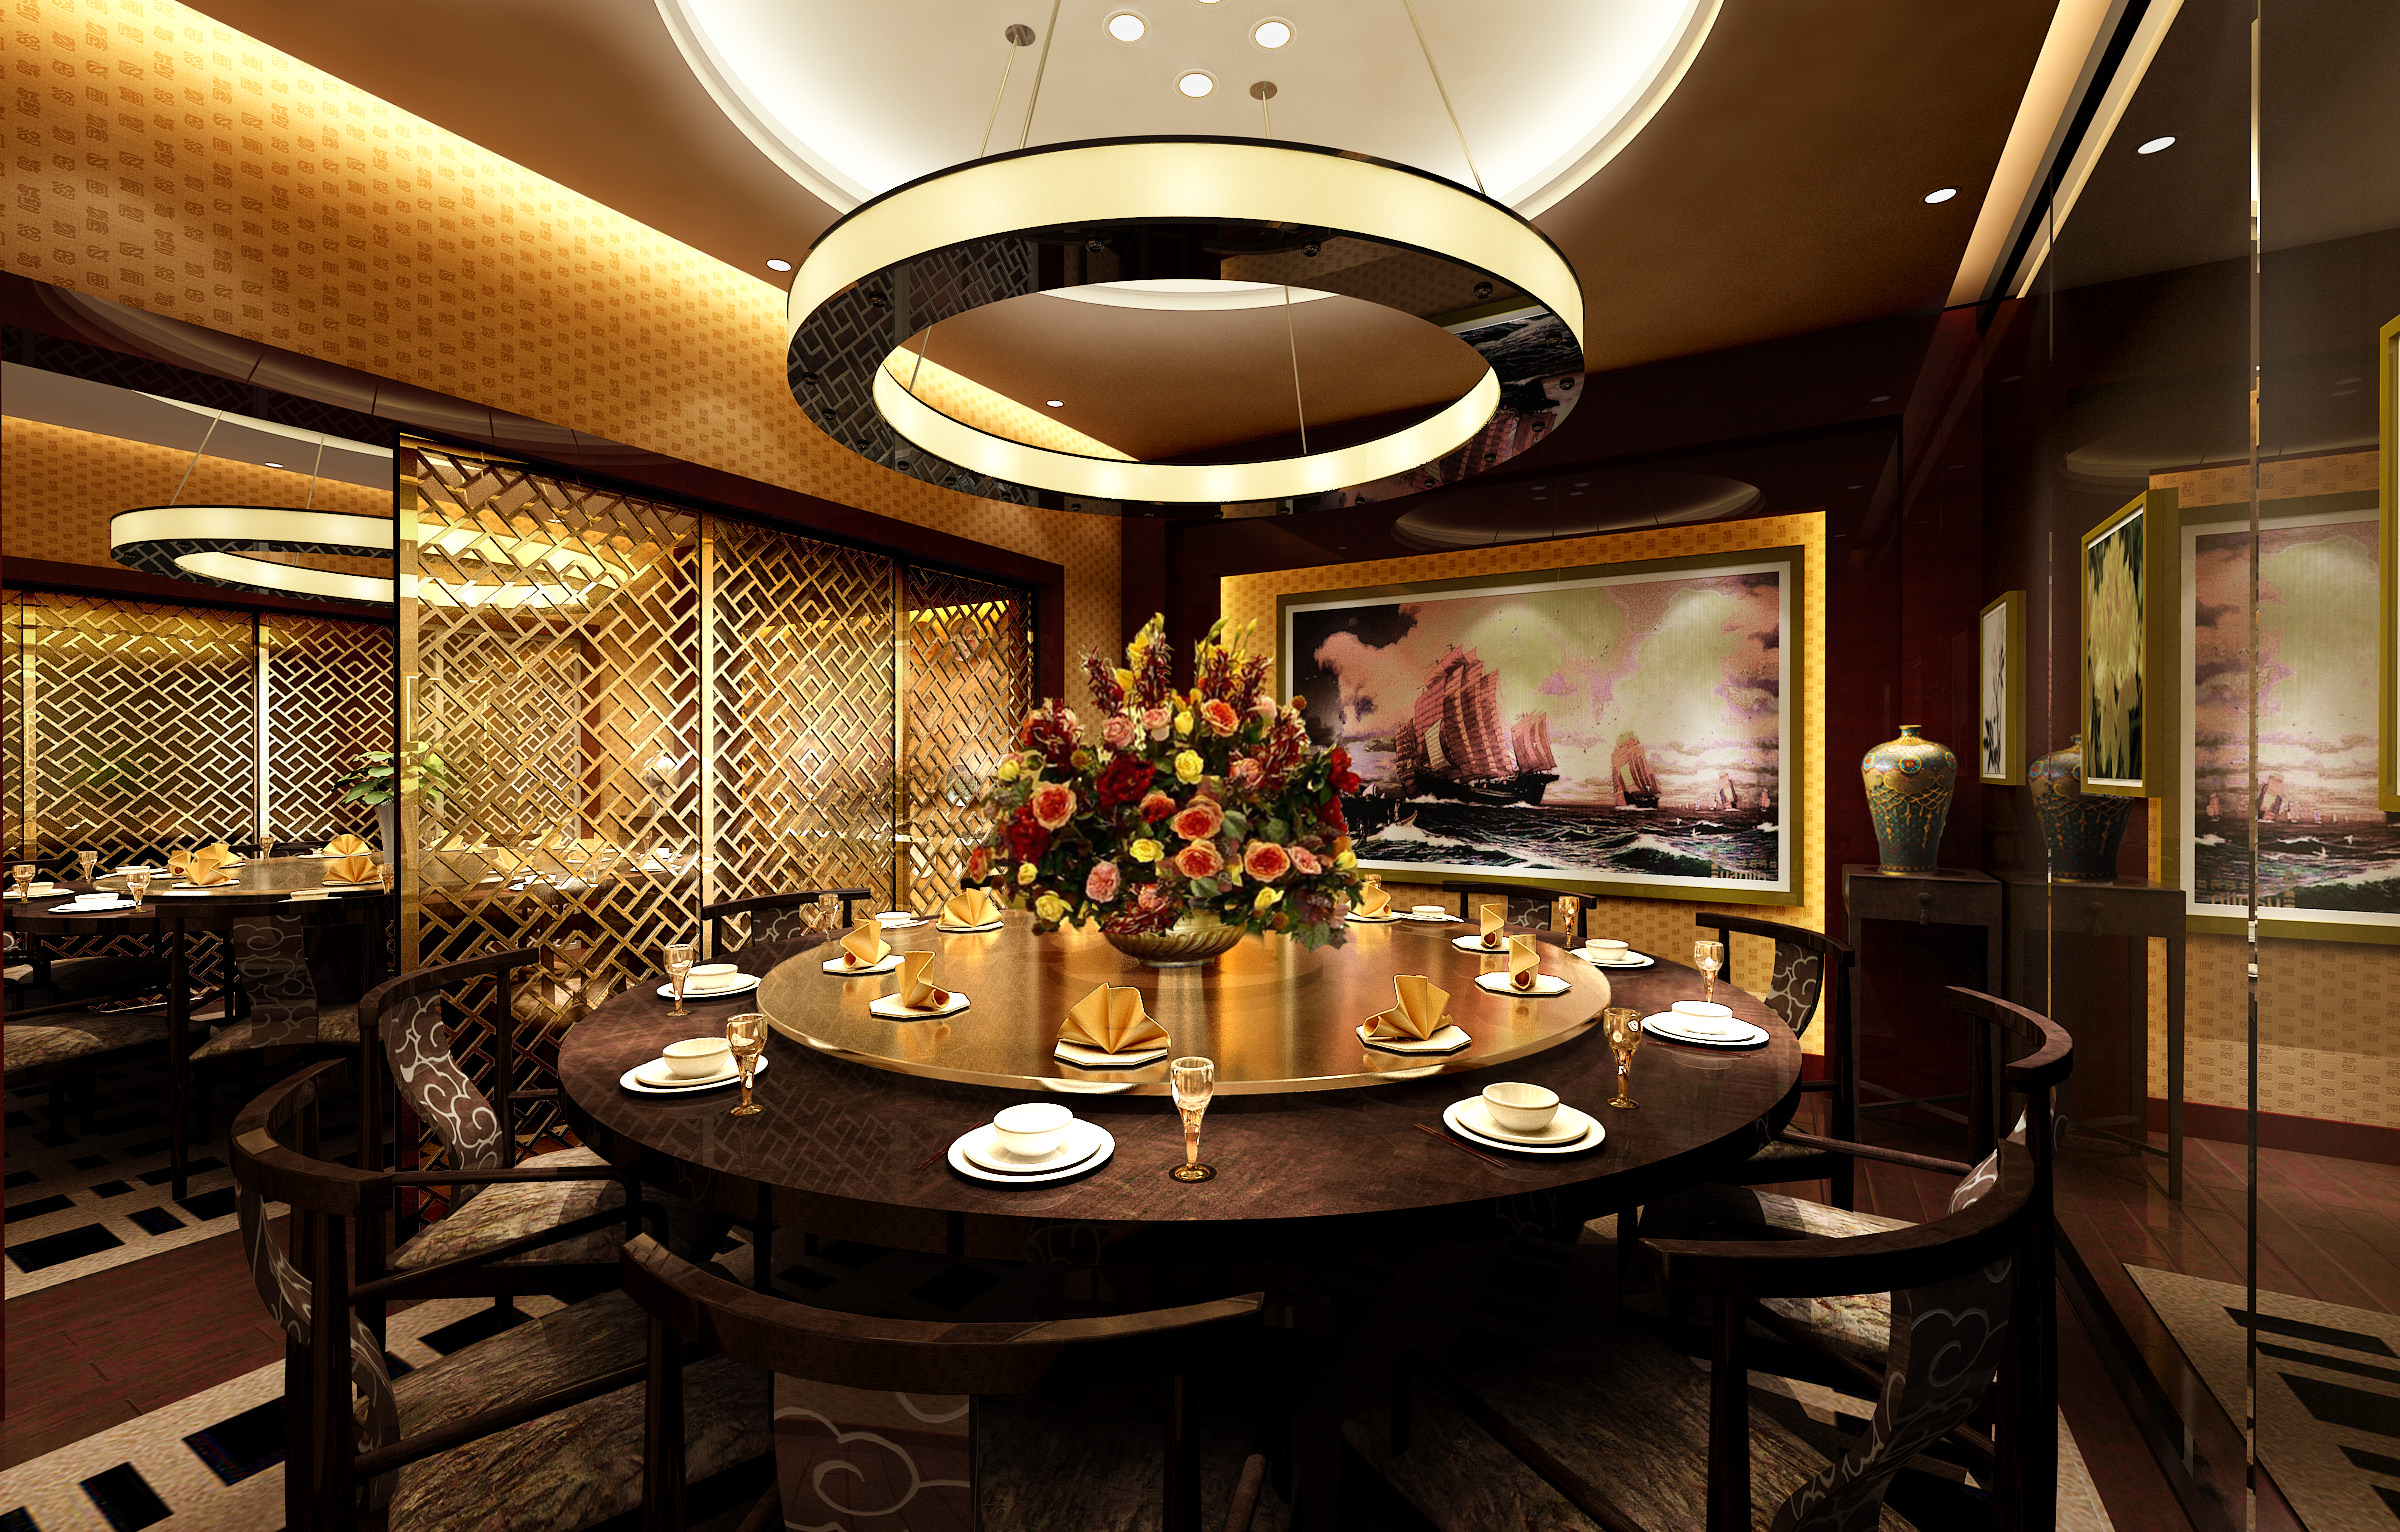 Restaurant dining room d model max cgtrader